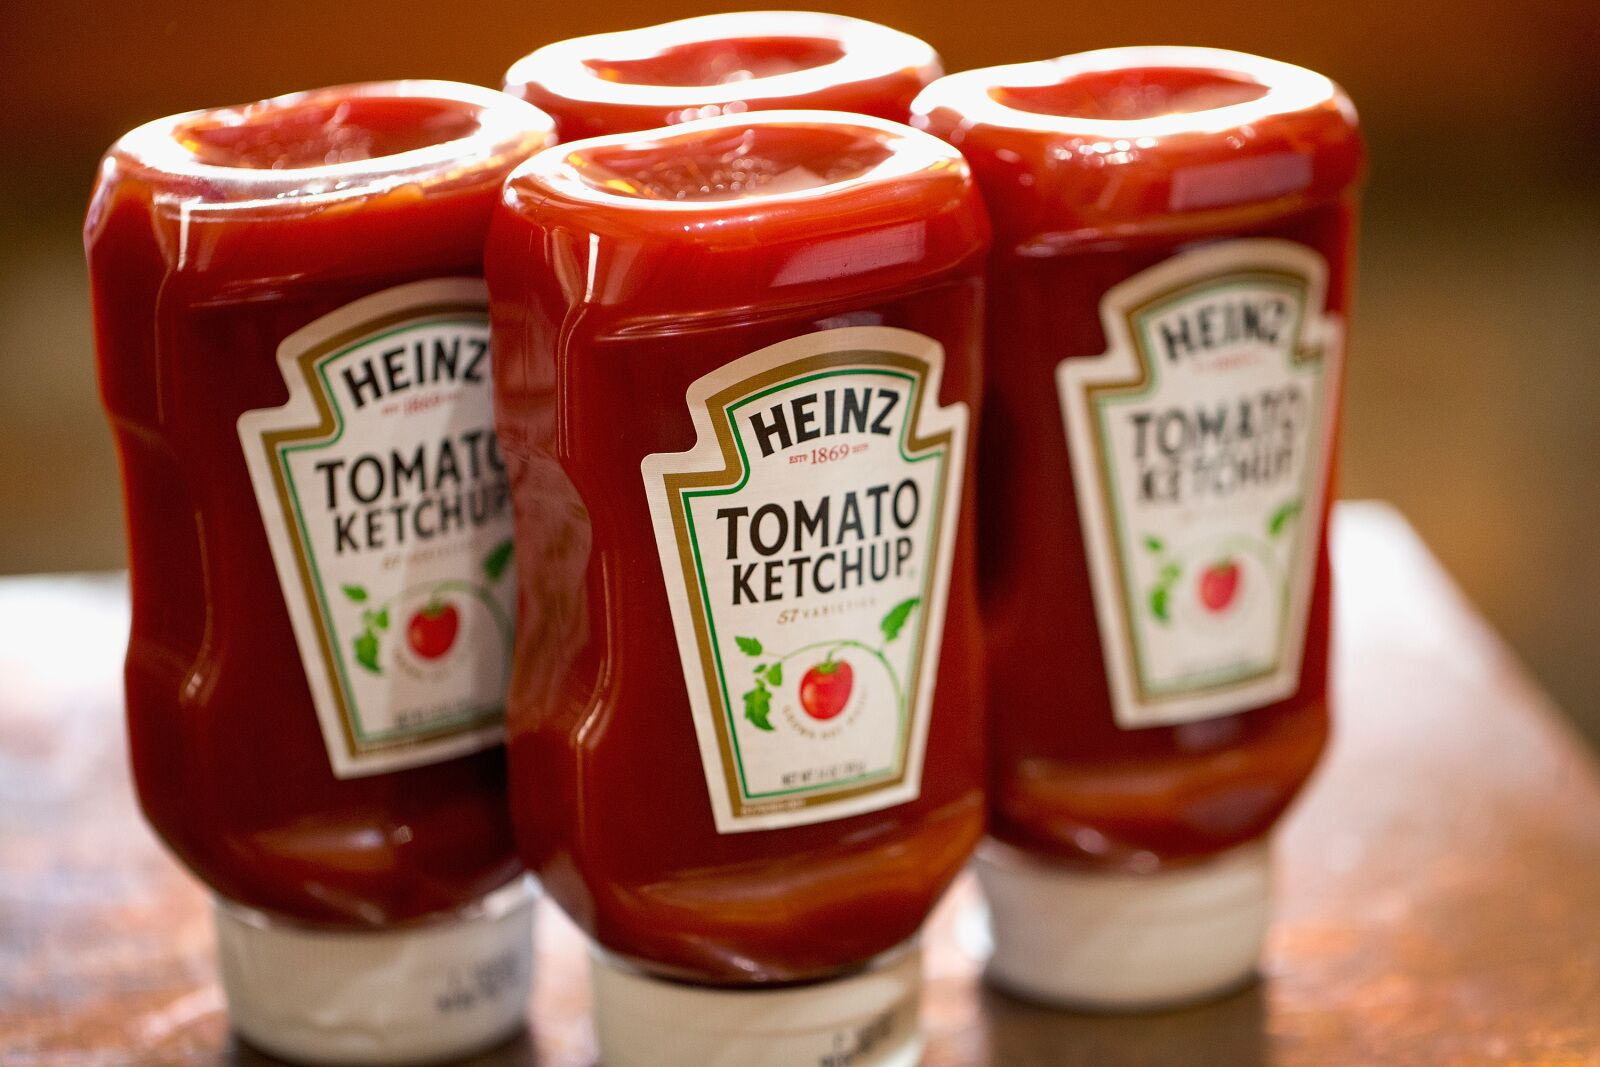 HEINZ Ketchup found a way for kids to love their extra veggies